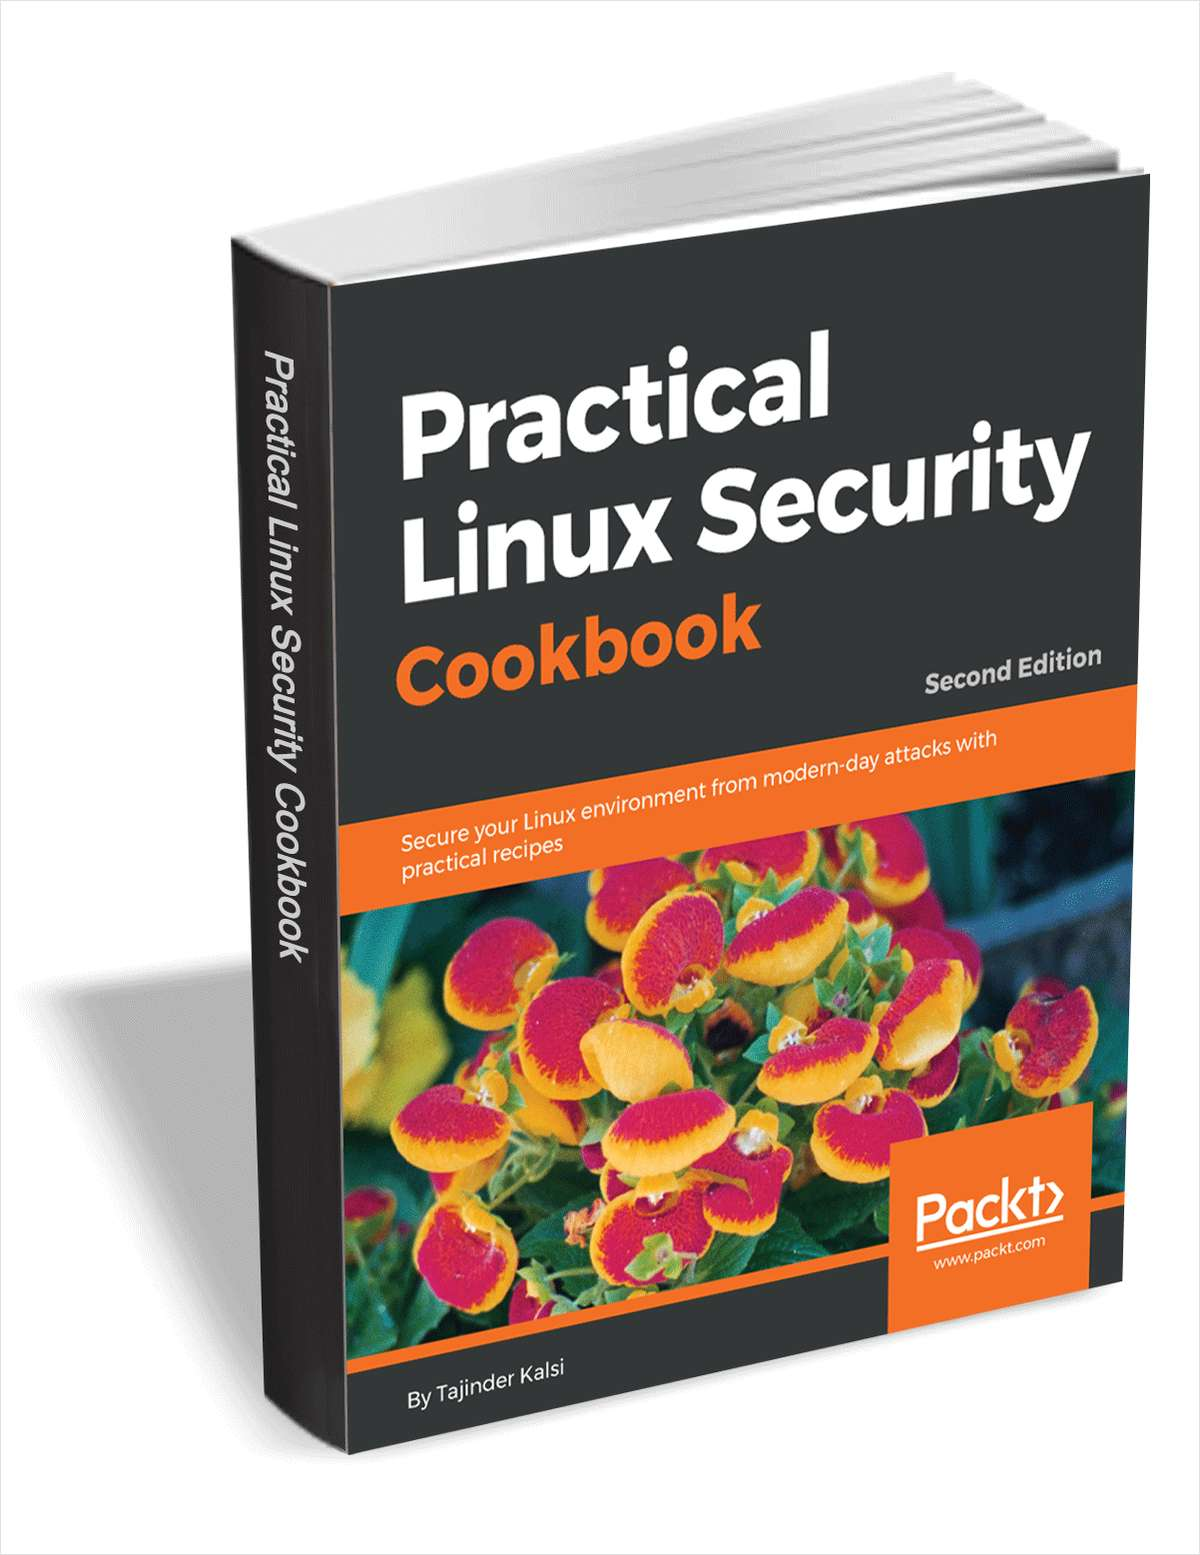 Practical Linux Security Cookbook - Second Edition ($35.99 Value) FREE for a Limited Time